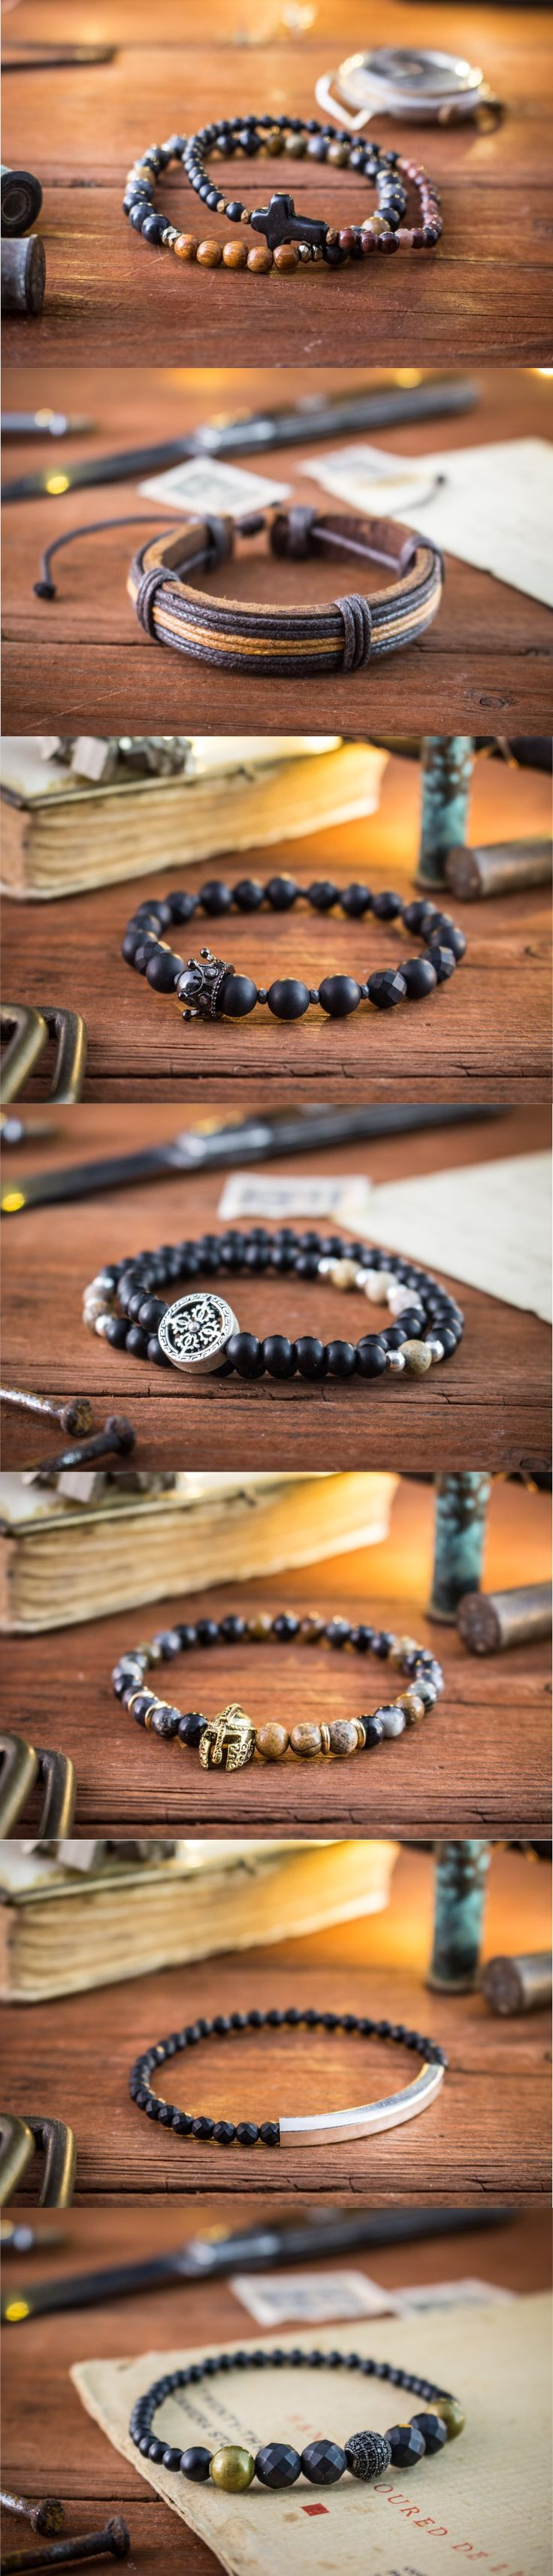 Selection of bracelets for men